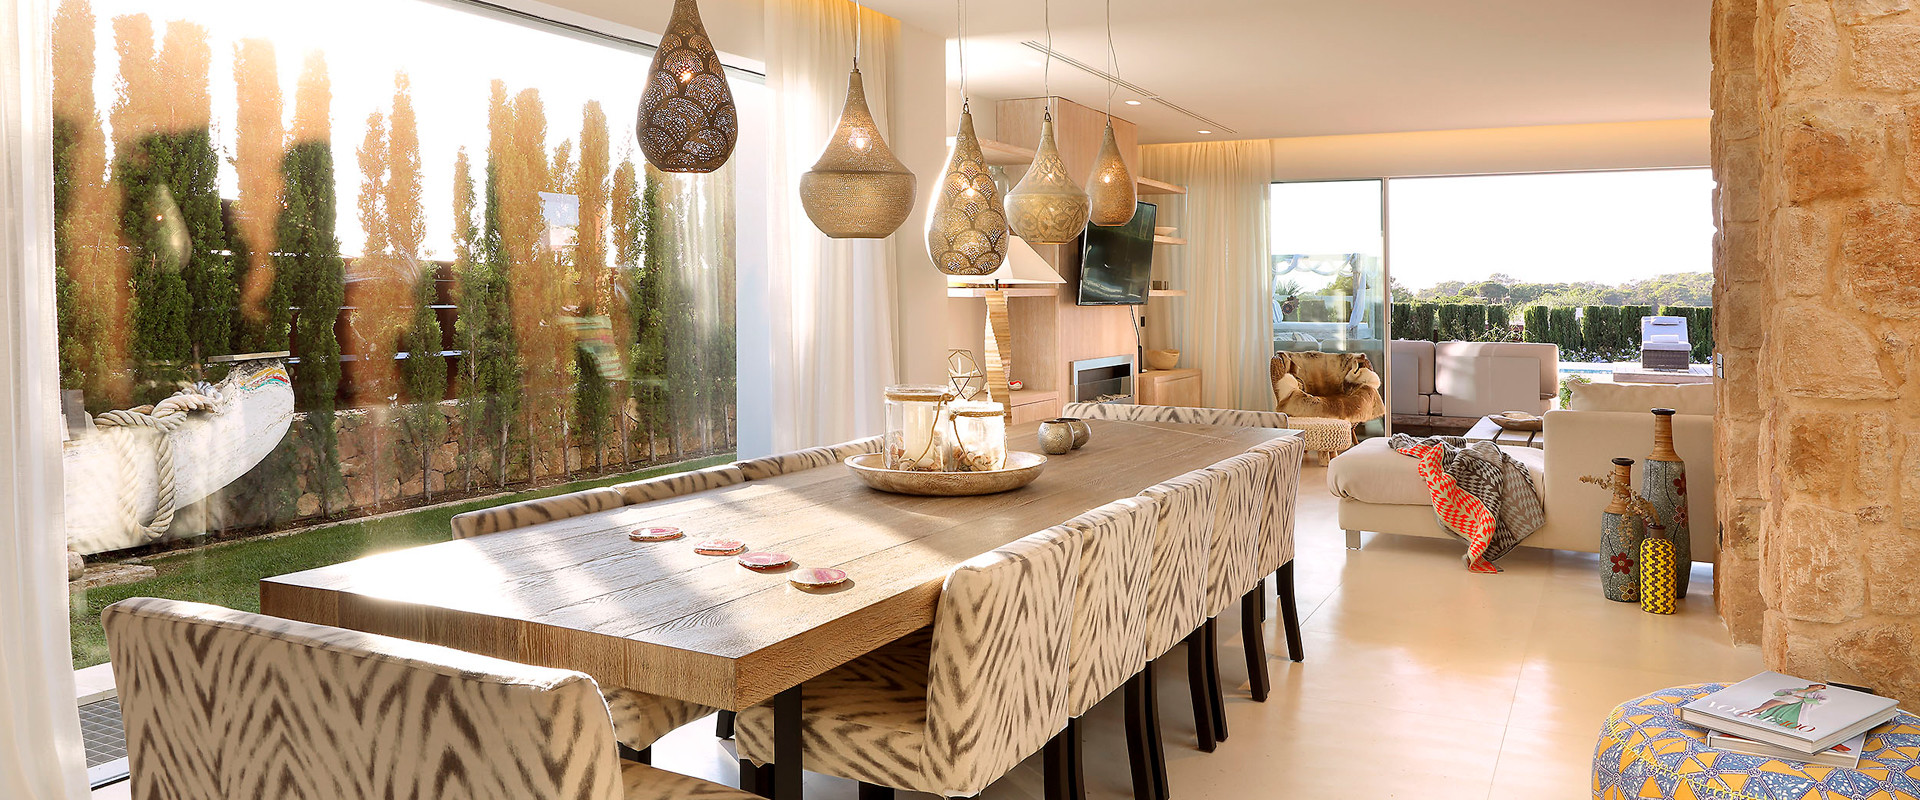 Traveller in Style – brandedhomes and luxury lifestyle ibiza